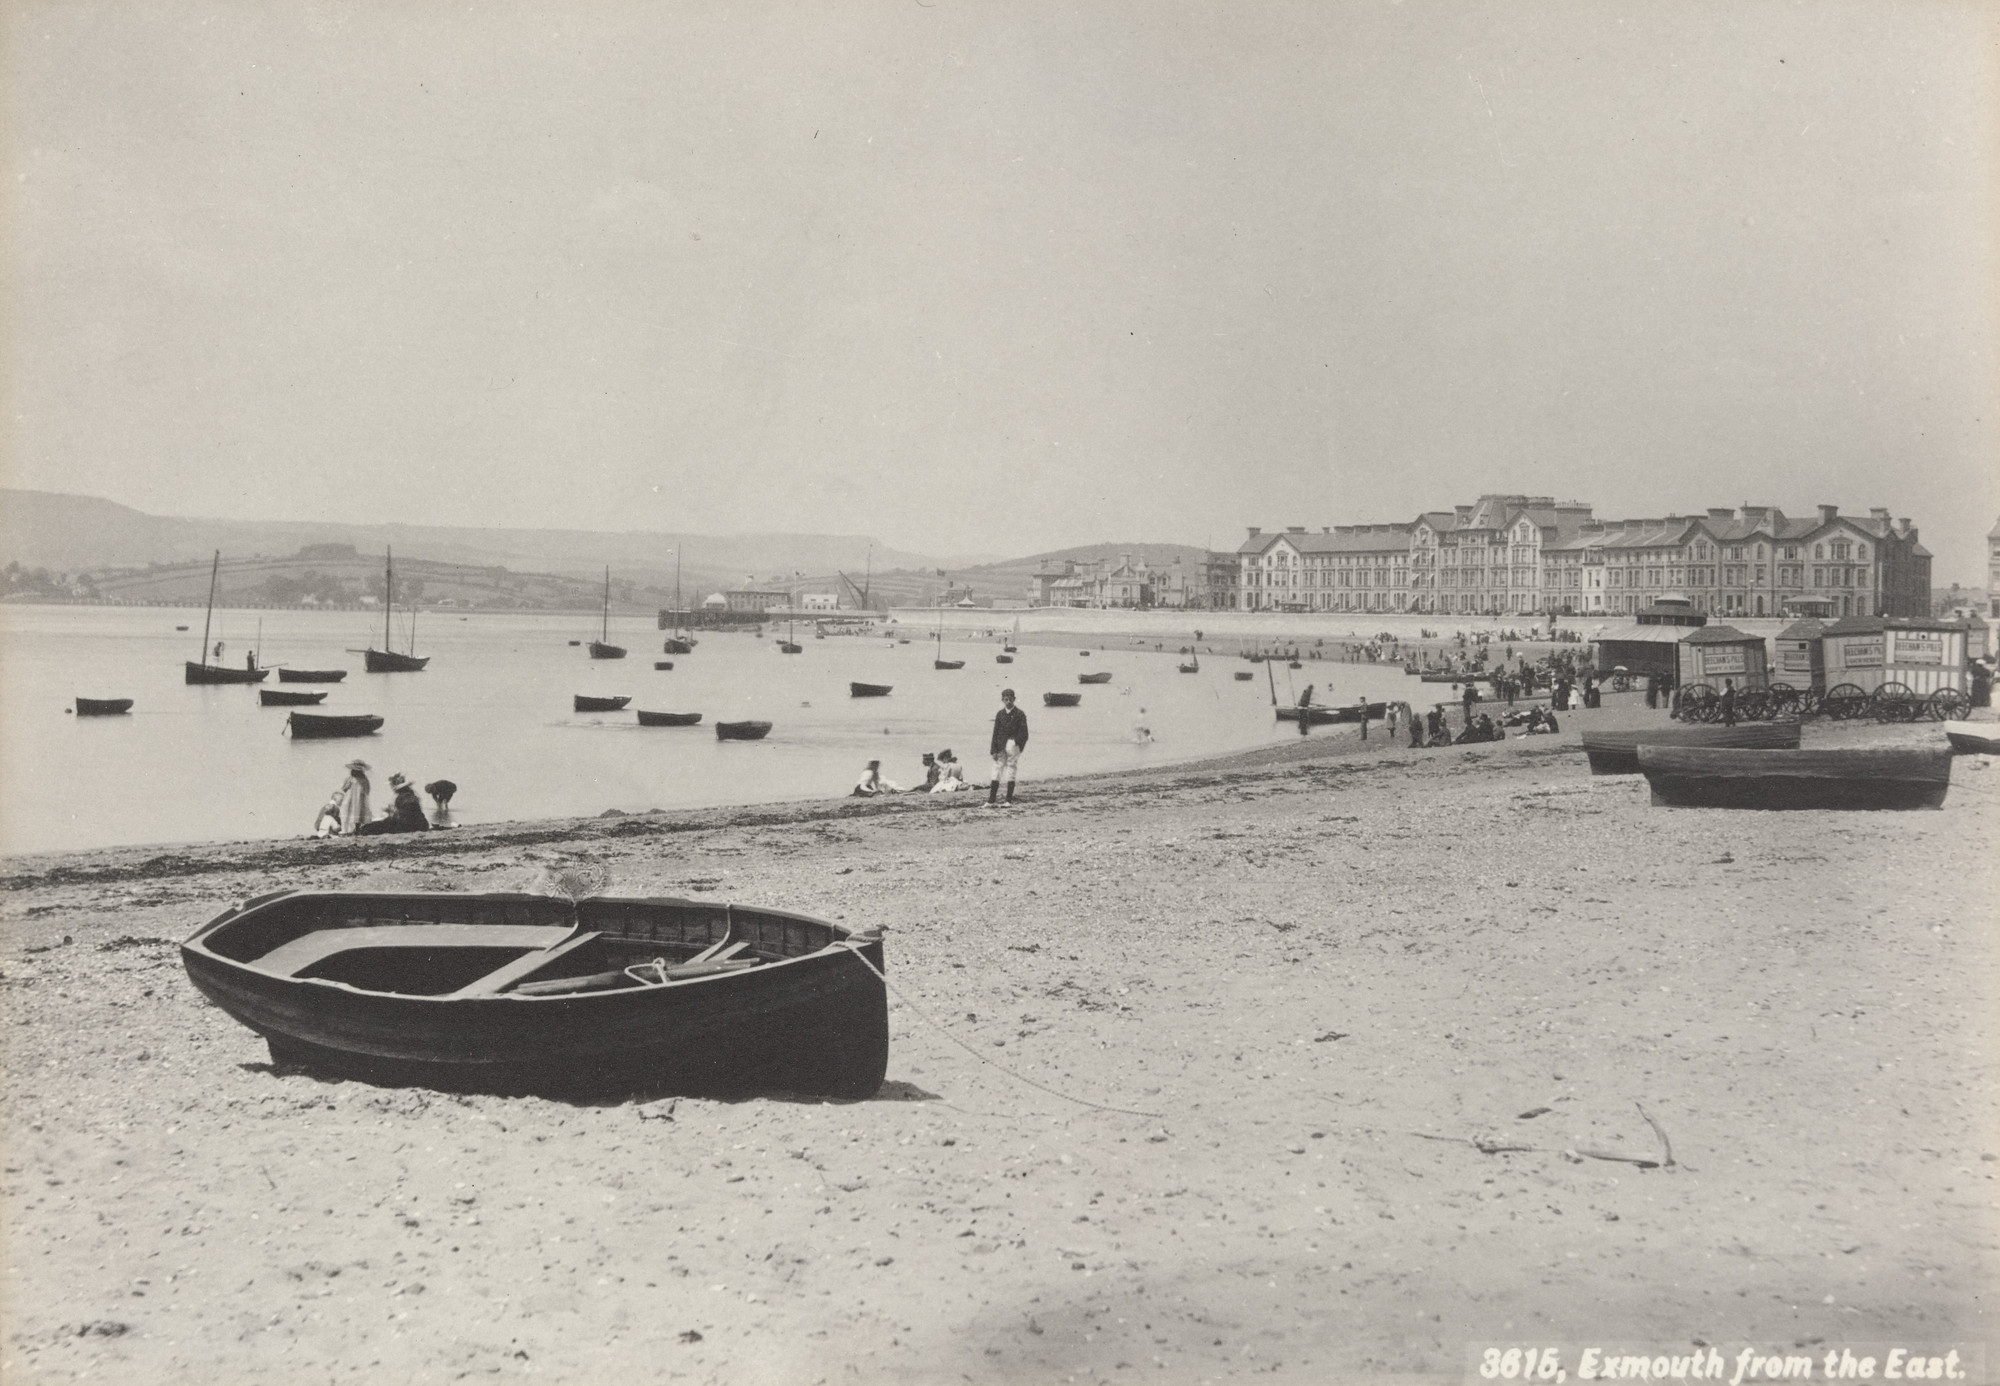 Francis Bedford. Exmouth from the East (No. 3615). c. 1860